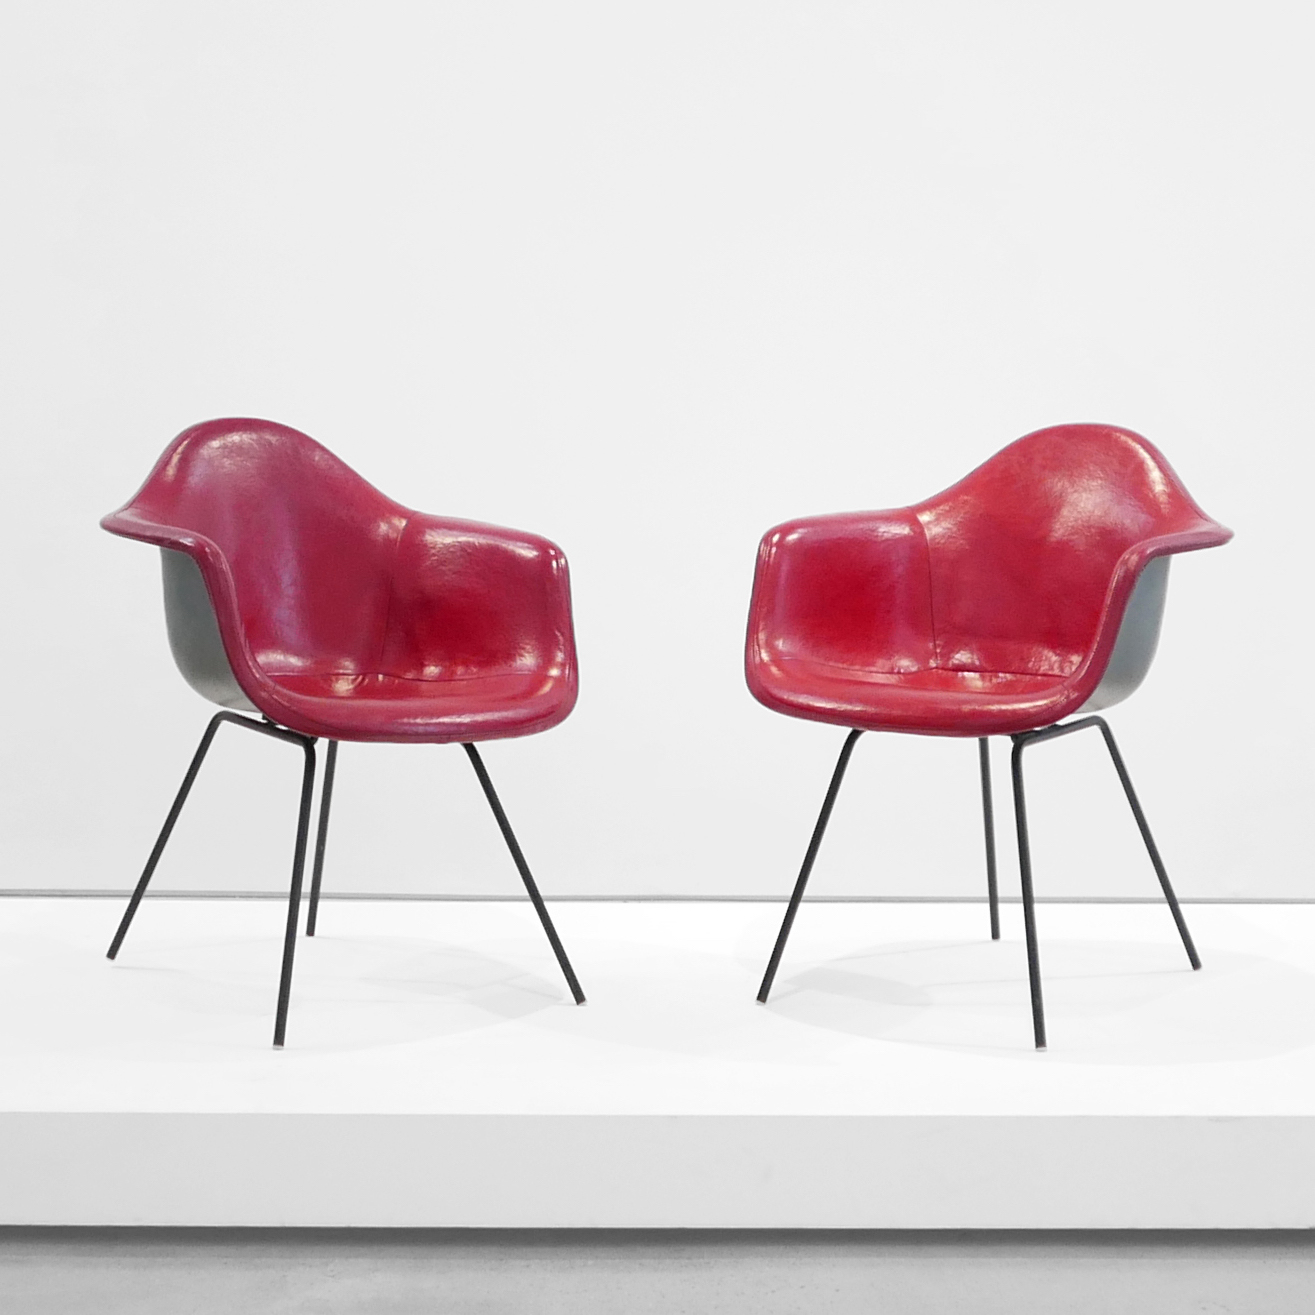 charles and ray eams pair of 'dax' chairs for herman miller $5,000